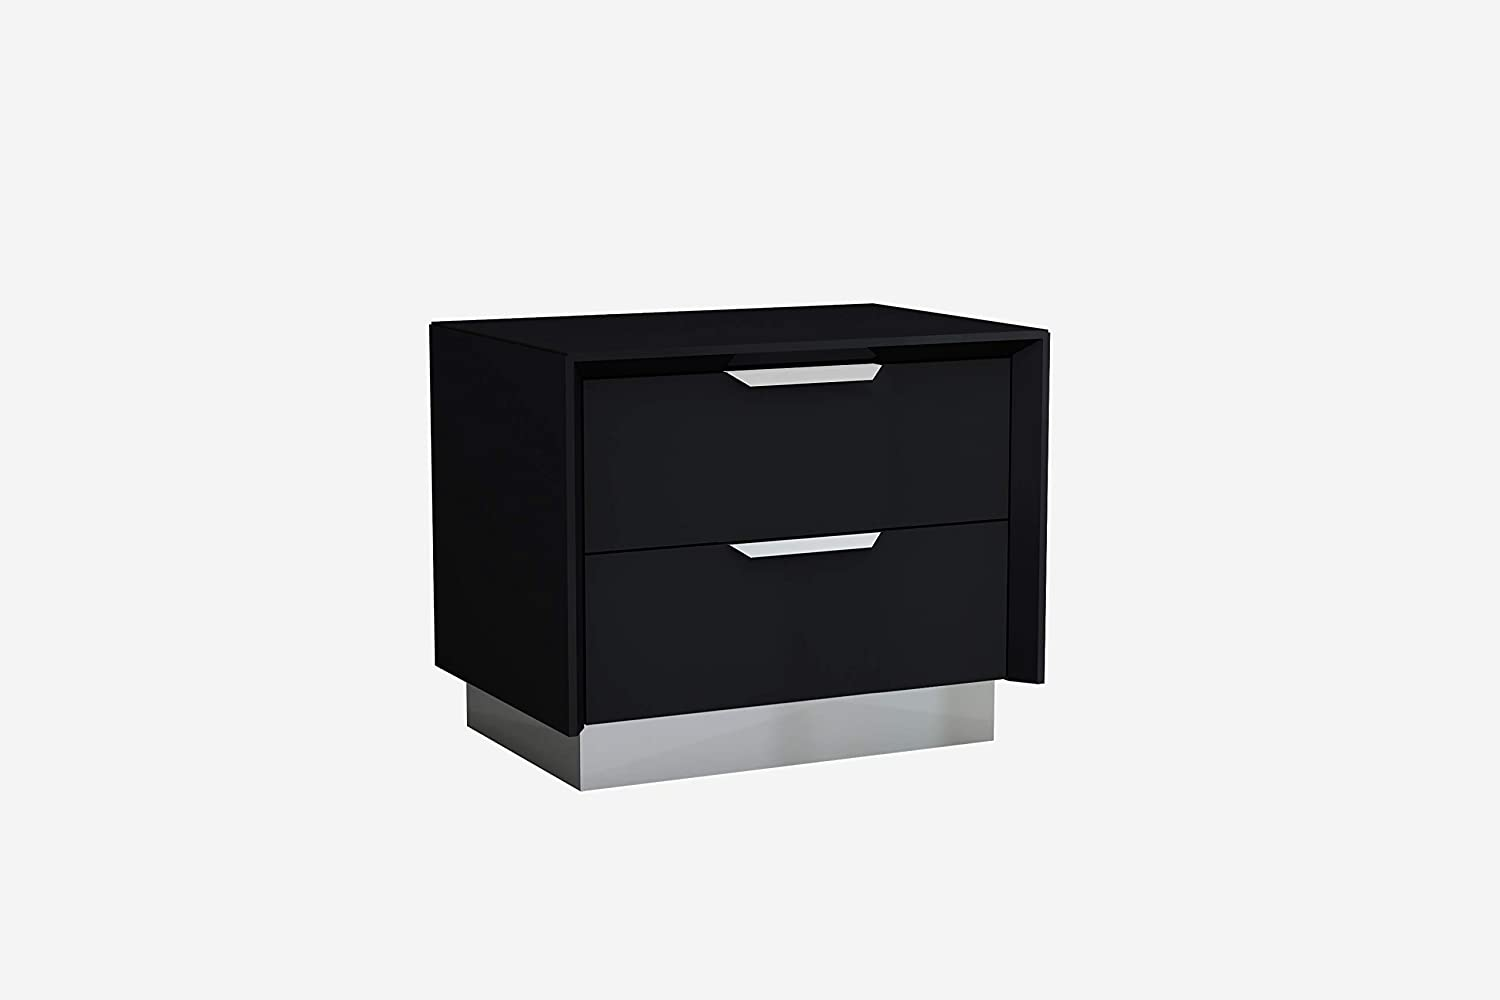 Whiteline Modern Living Navi Nightstand, Black